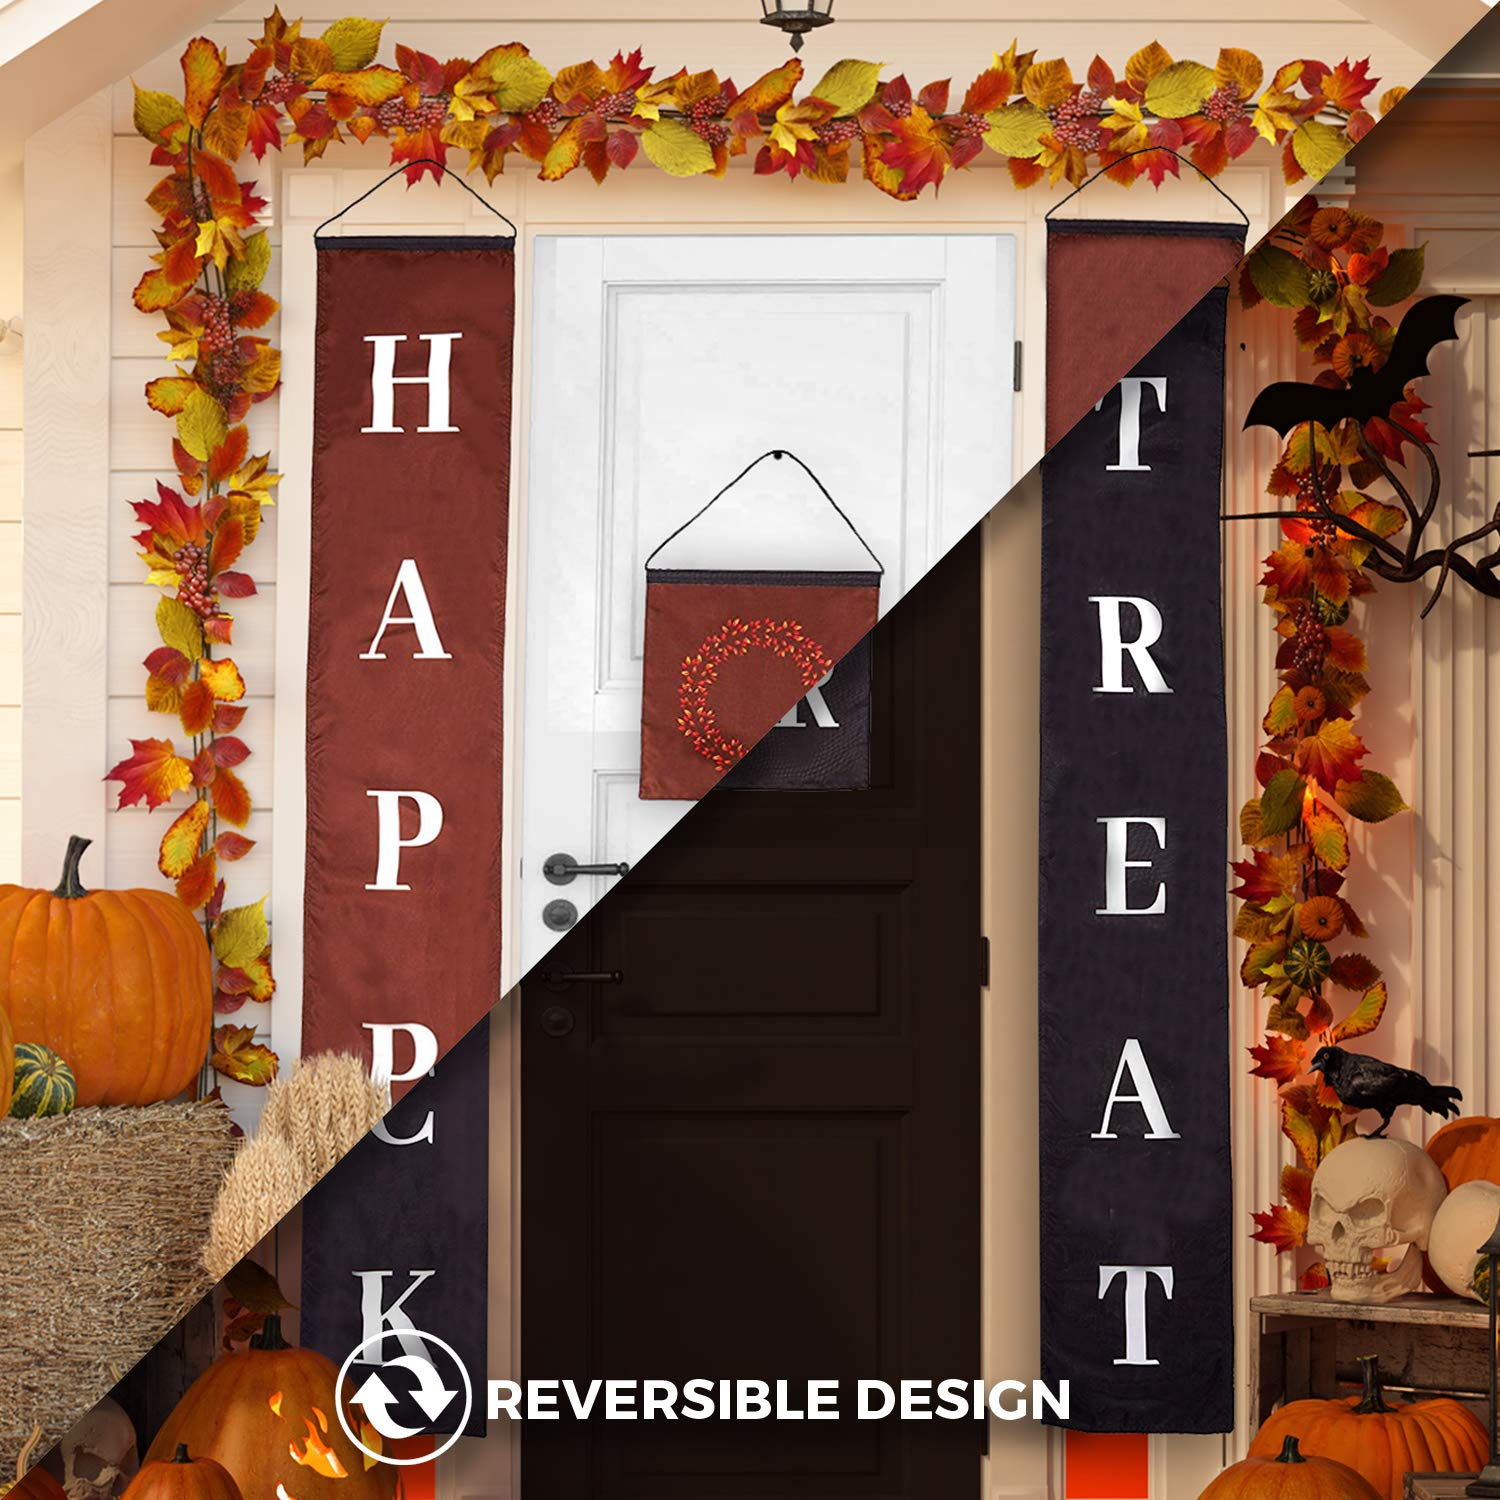 Reversible Trick or Treat Halloween & Happy Fall Banner Party Decorations, Durable 3 Piece Set, Perfect for Front Door Home or Office Decor, Ready to Hang Indoor or Outdoor Display